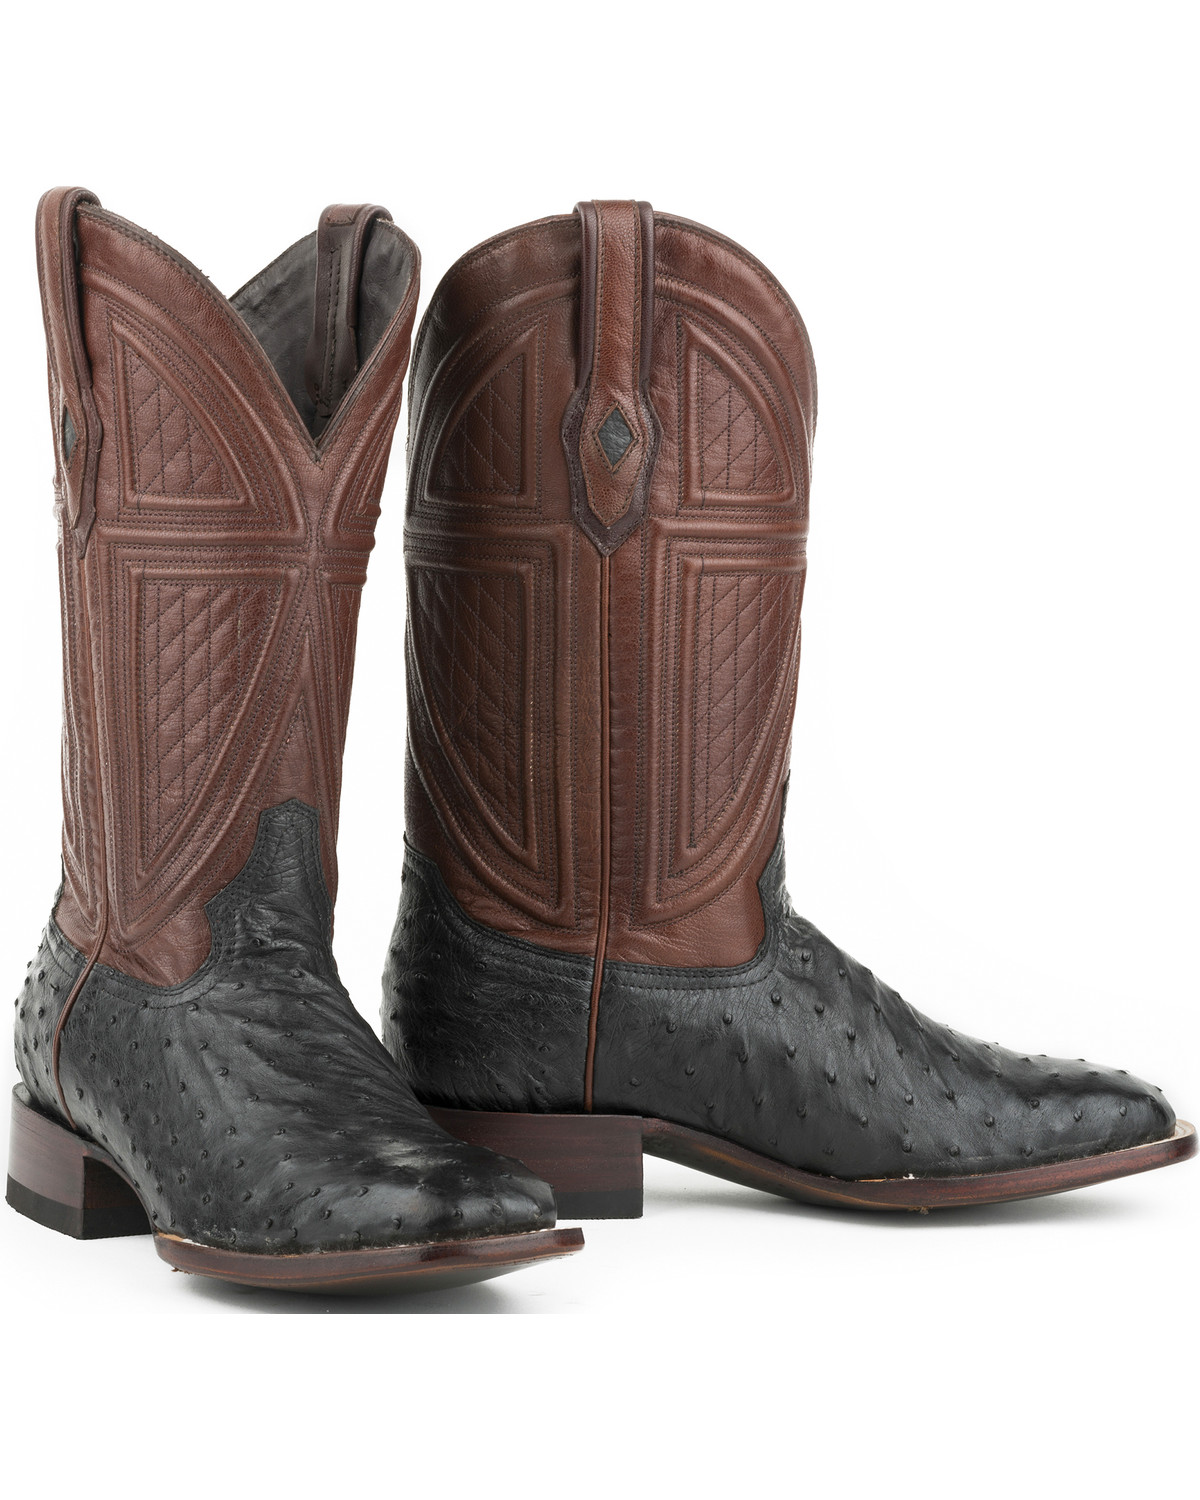 Stetson Men S Ostrich Vamp Leather Exotic Boots Boot Barn